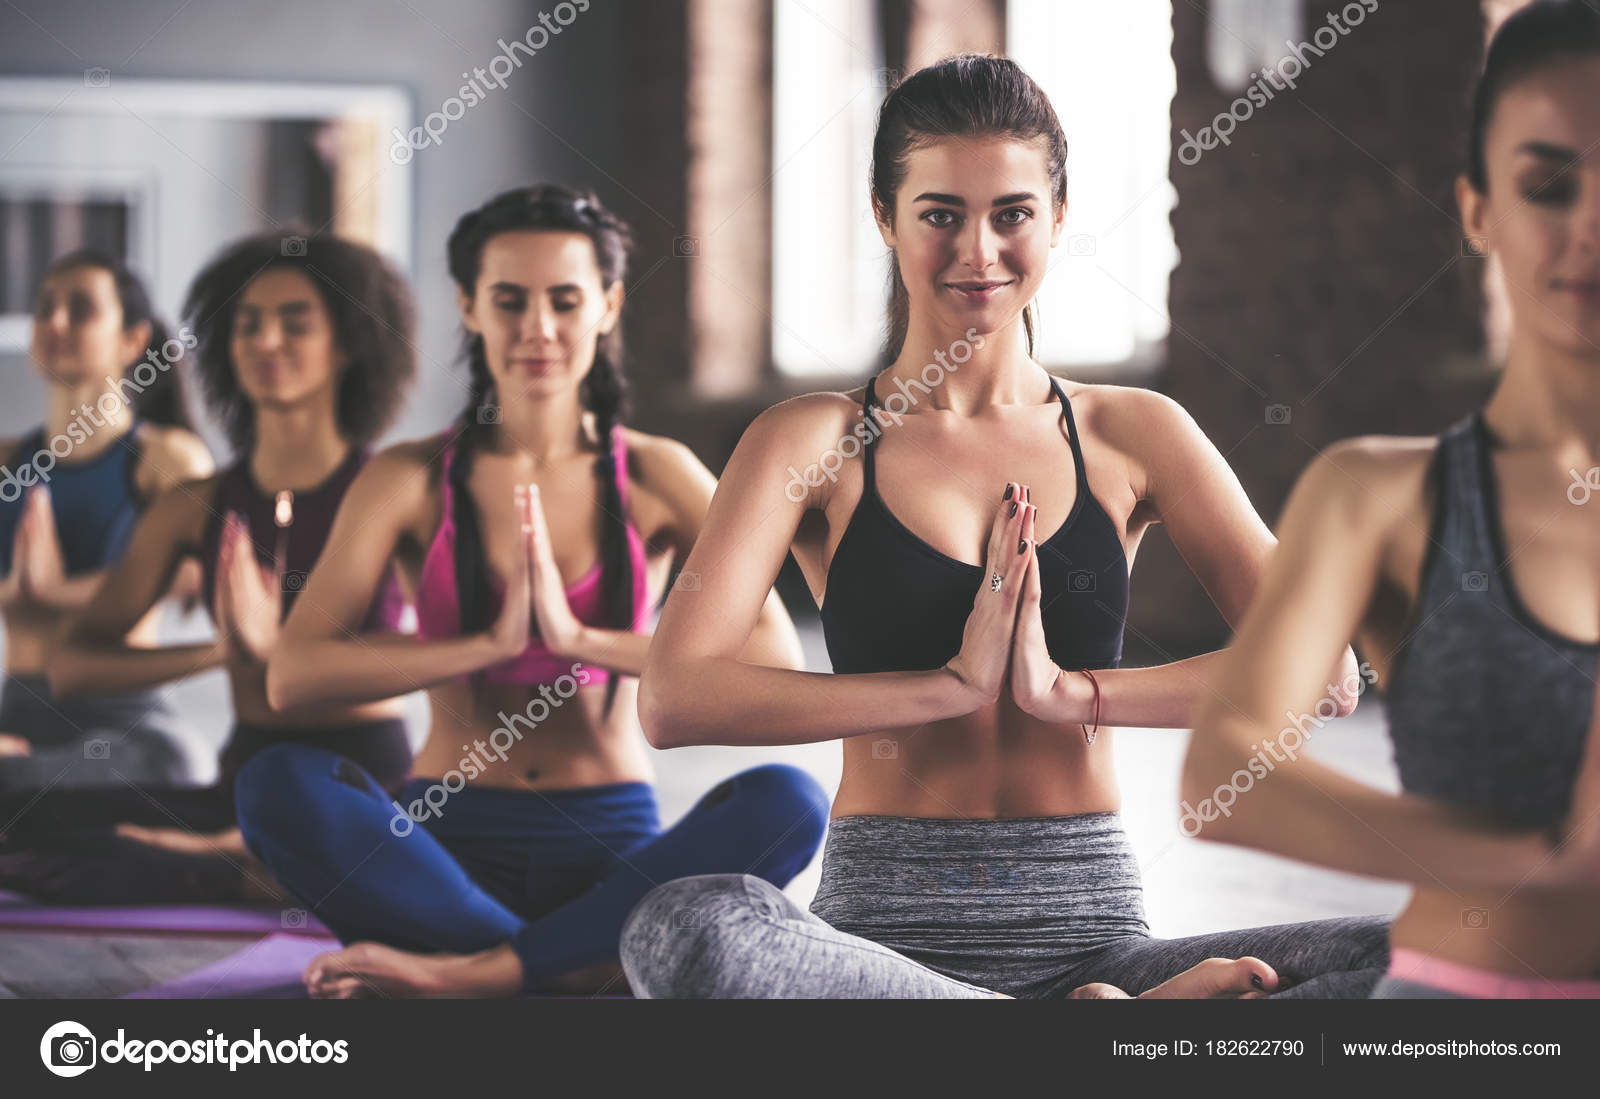 Attractive Young Sport Girls Are Doing Yoga Together Group Training Healthy Lifestyle Concept Photo By 4pmphotogmail